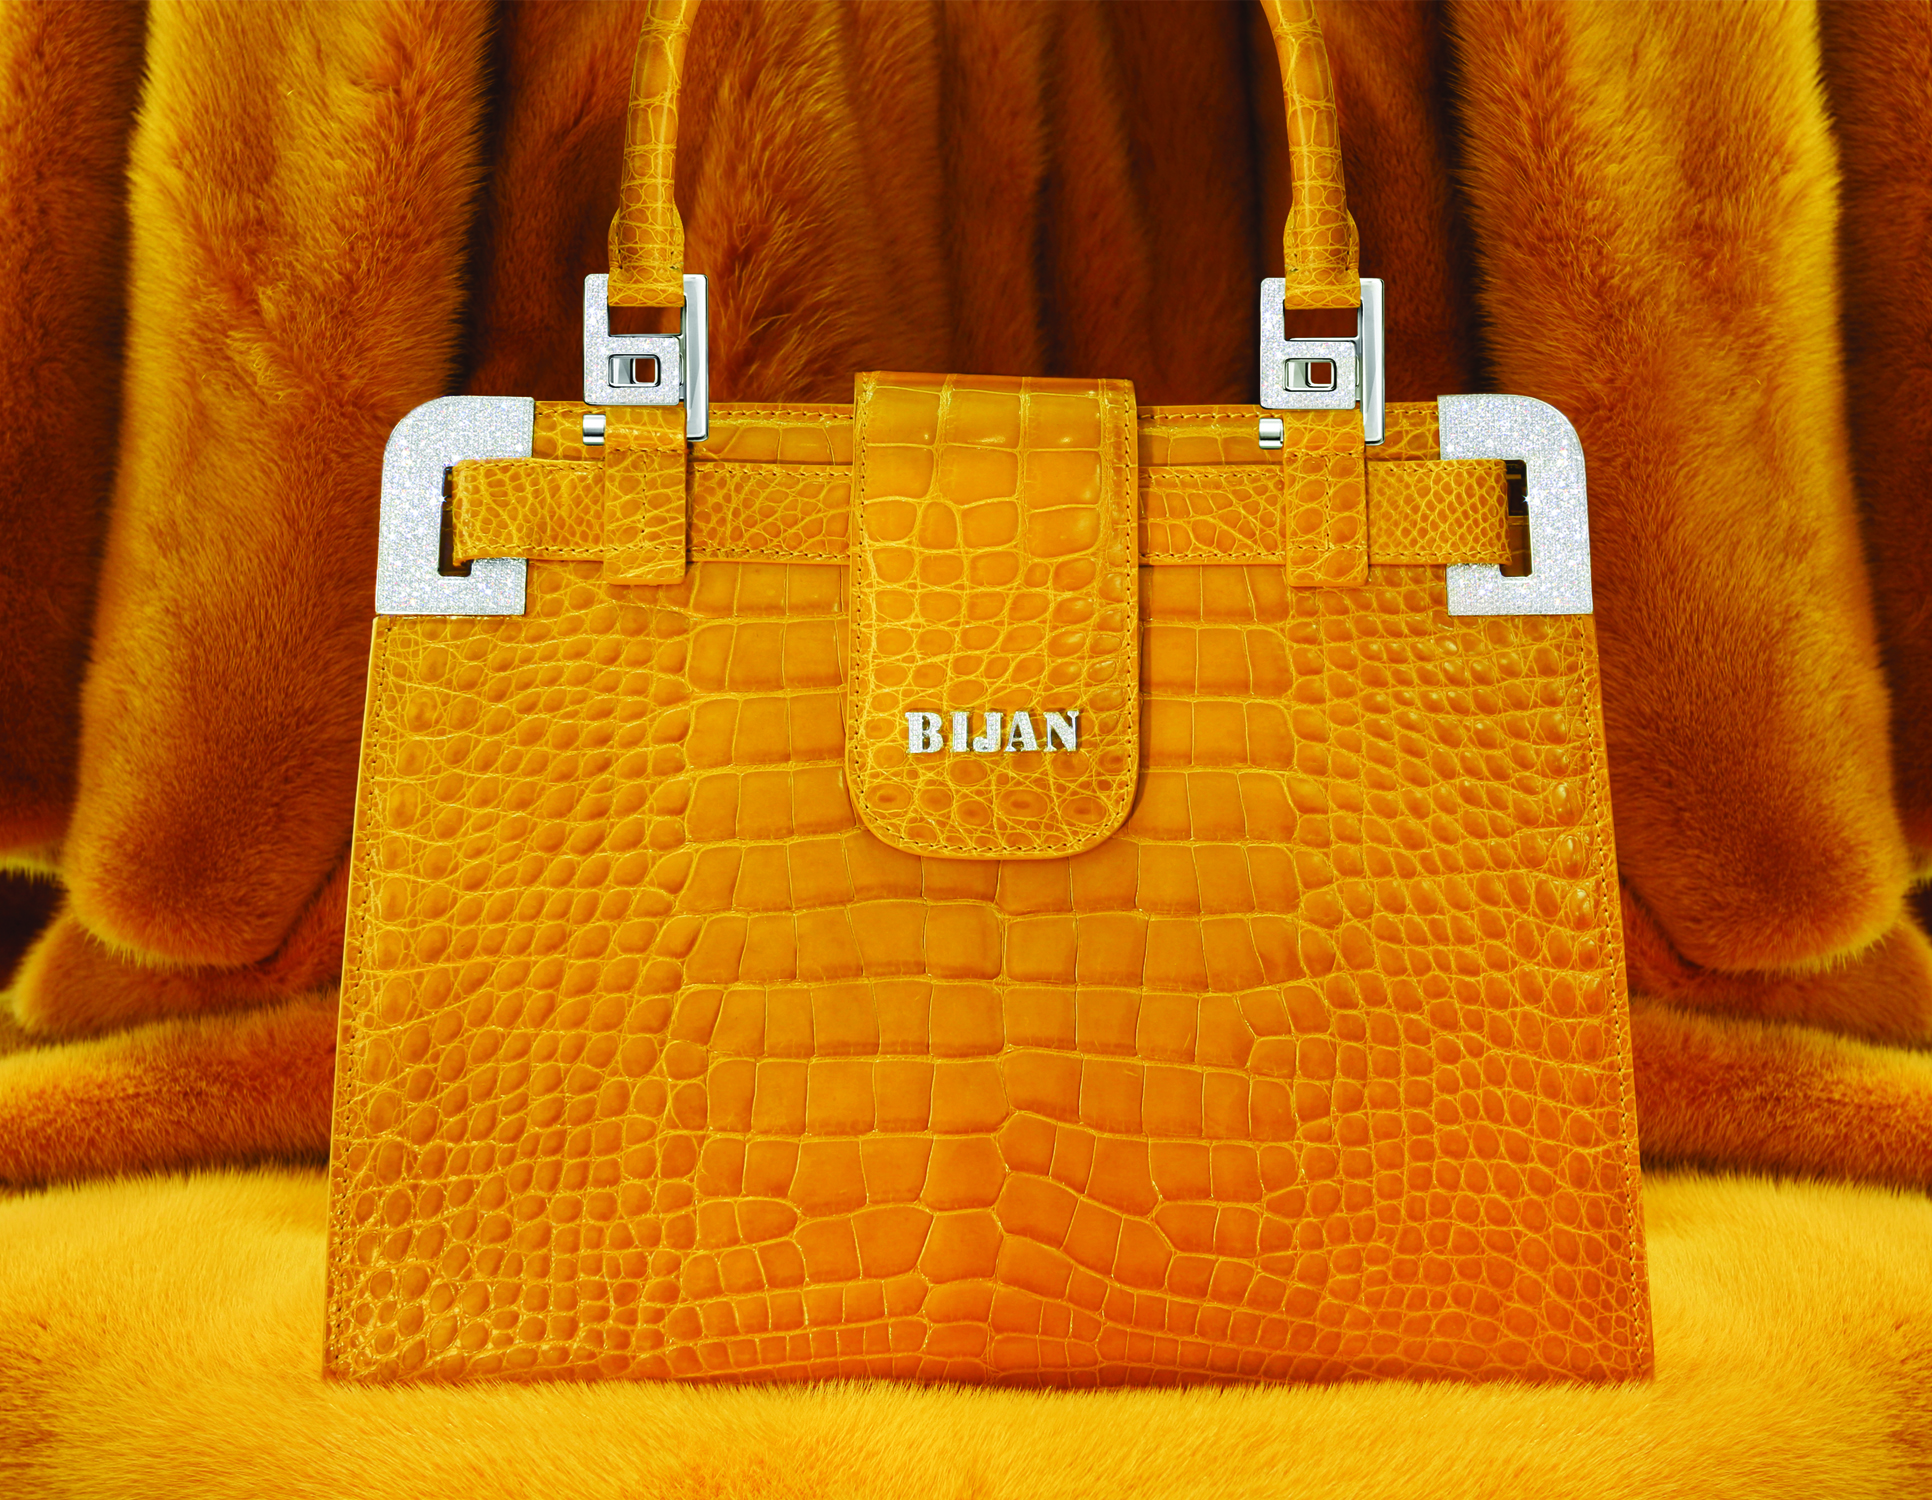 This isn't the seized Bijan bag, but it's an example of one of the bags they sell.